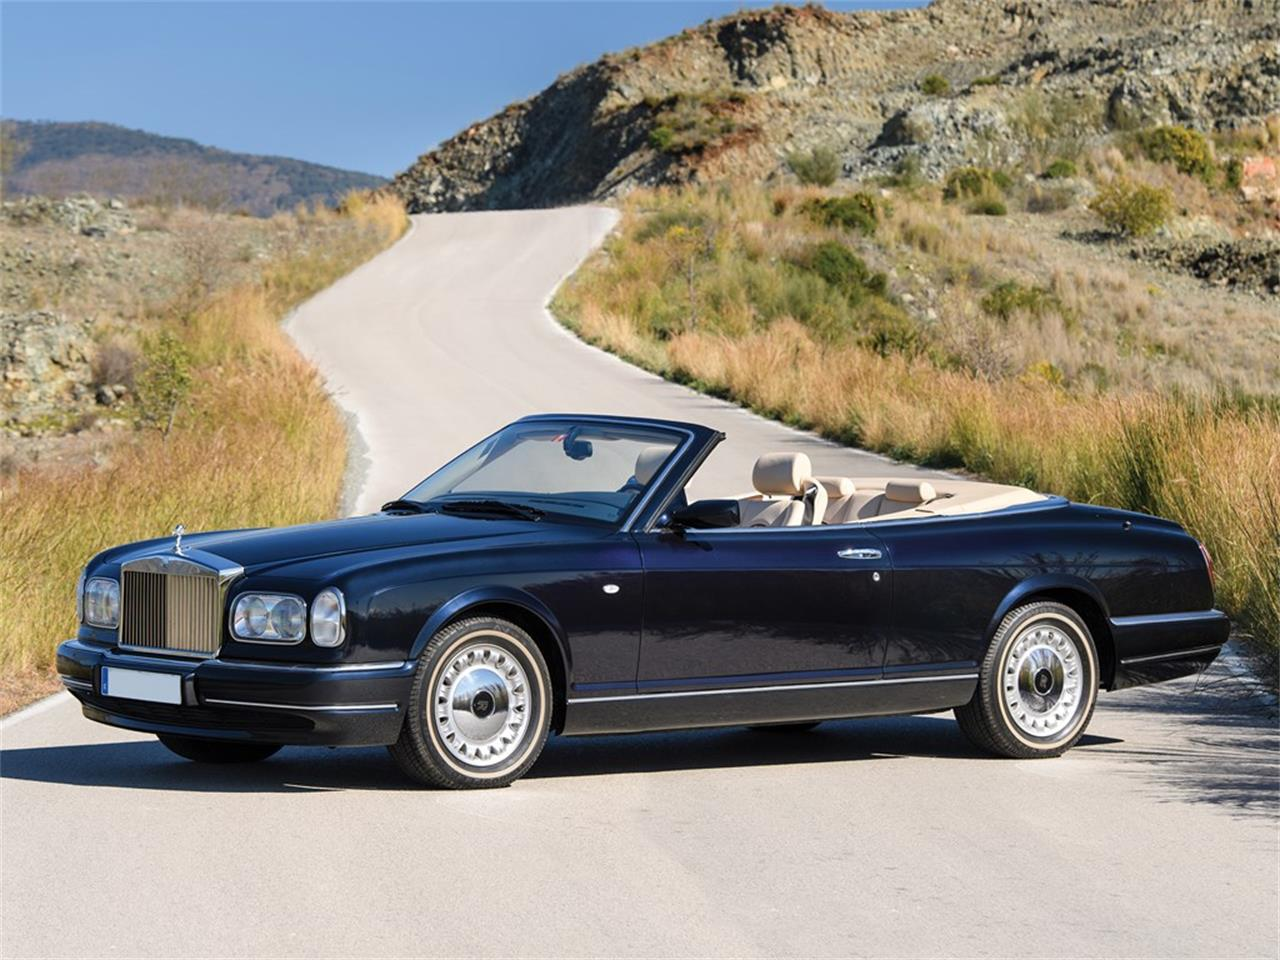 2000 Rolls-Royce Corniche for sale in Essen, Other